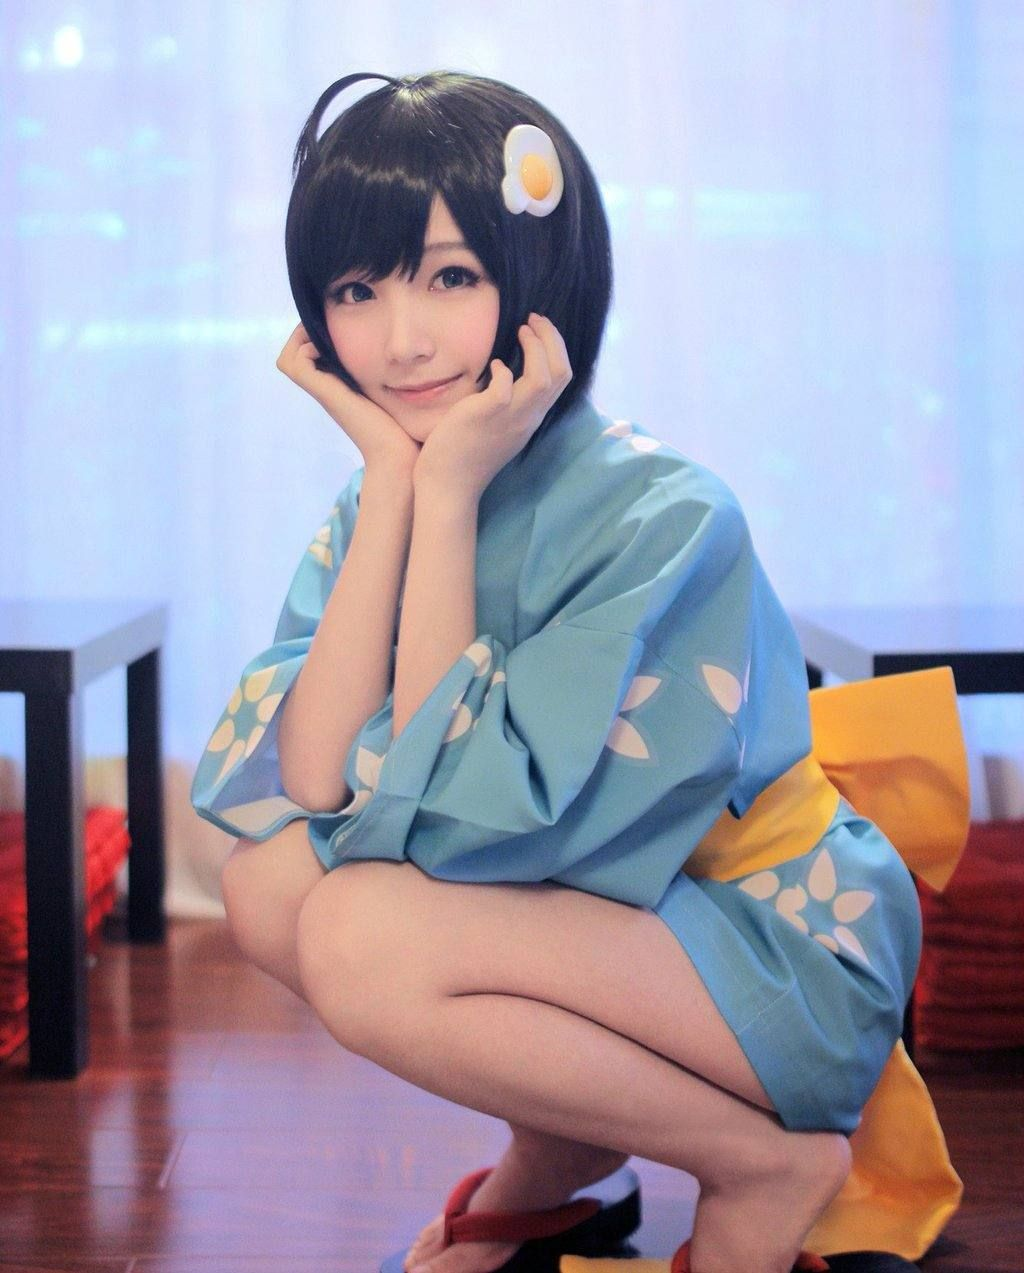 Pin by Ta S. Htoo on CUTE | Cosplay anime